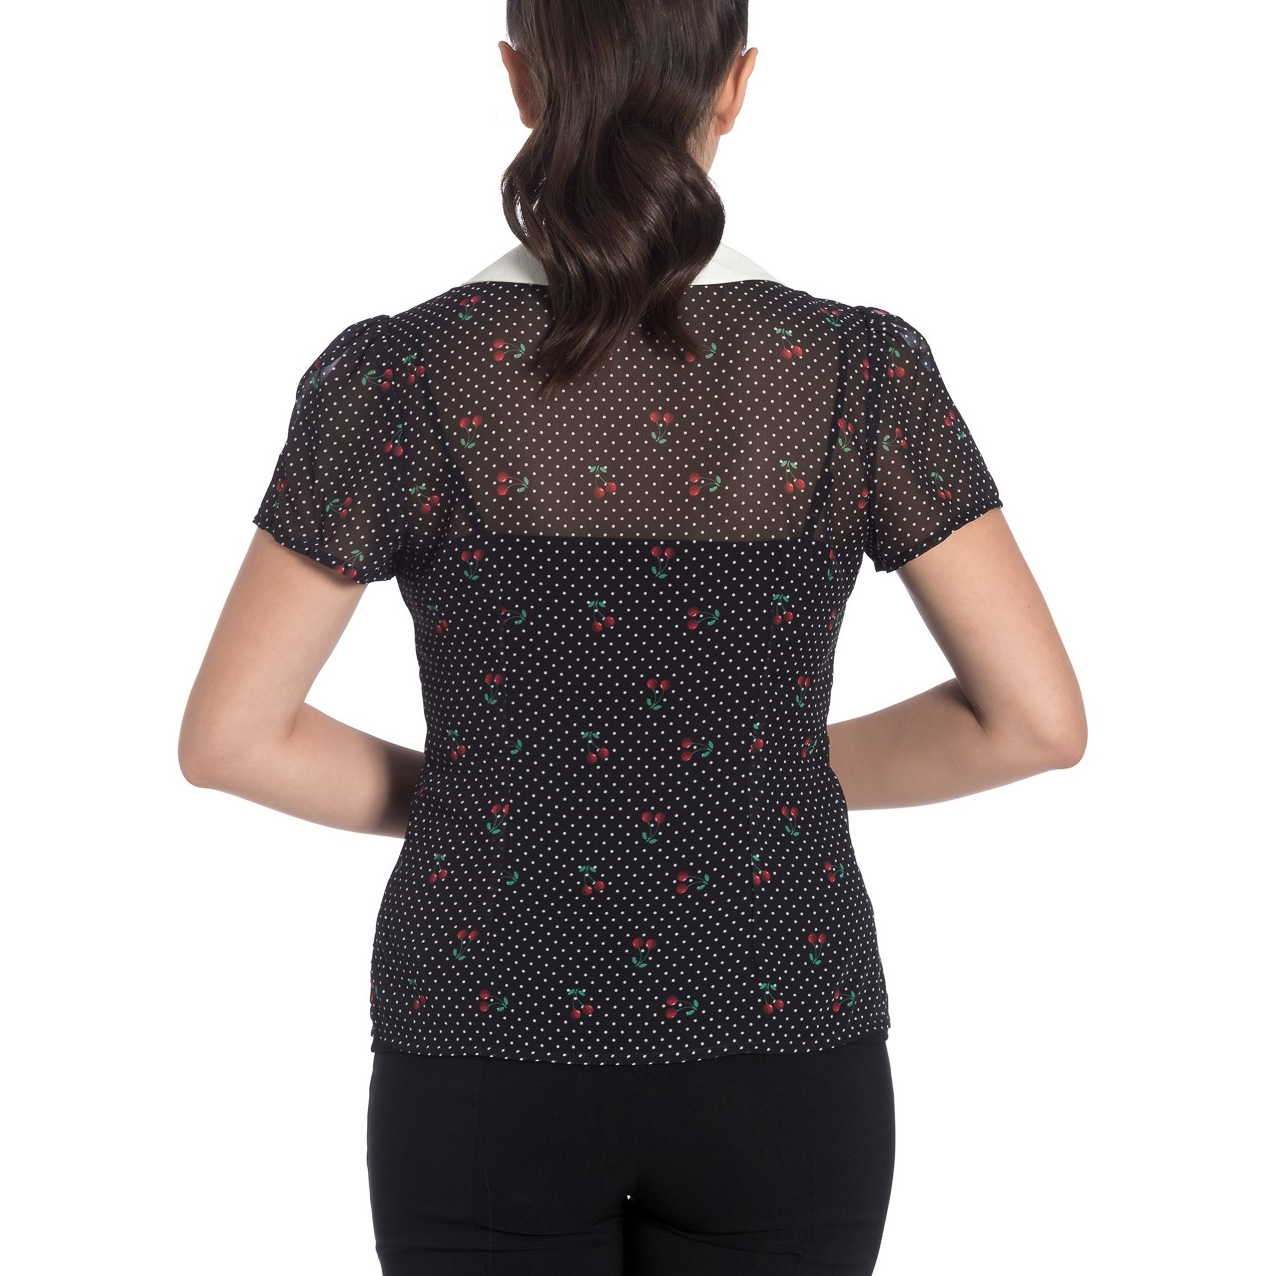 Hell-Bunny-Shirt-Top-Black-50s-Polka-Dot-SOPHIE-Blouse-Cherries-Cherry-All-Sizes thumbnail 13